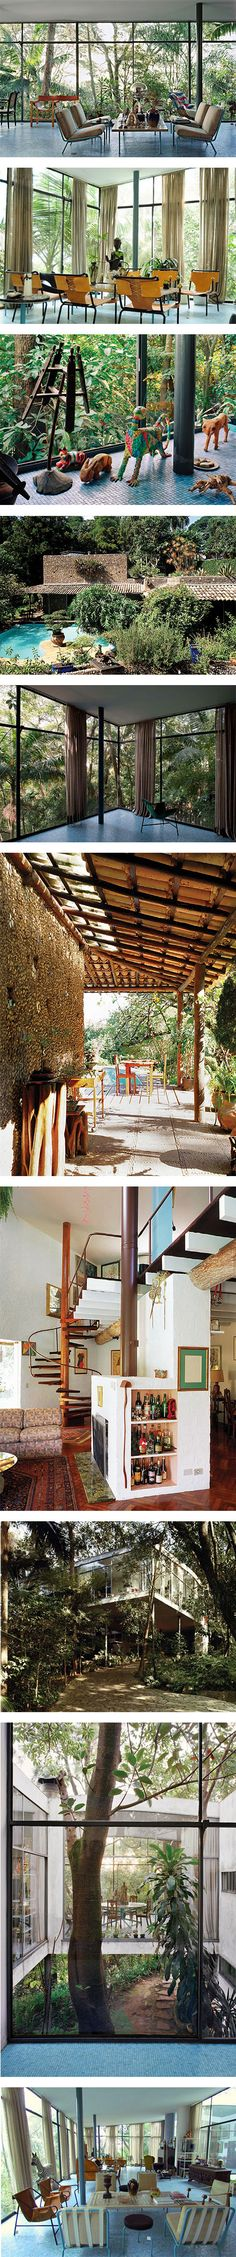 Glass House by Lina Bo Bardi on Nuji.com #glasshouse #linabobardi #brazil  ~ Great pin! For Oahu architectural design visit http://ownerbuiltdesign.com